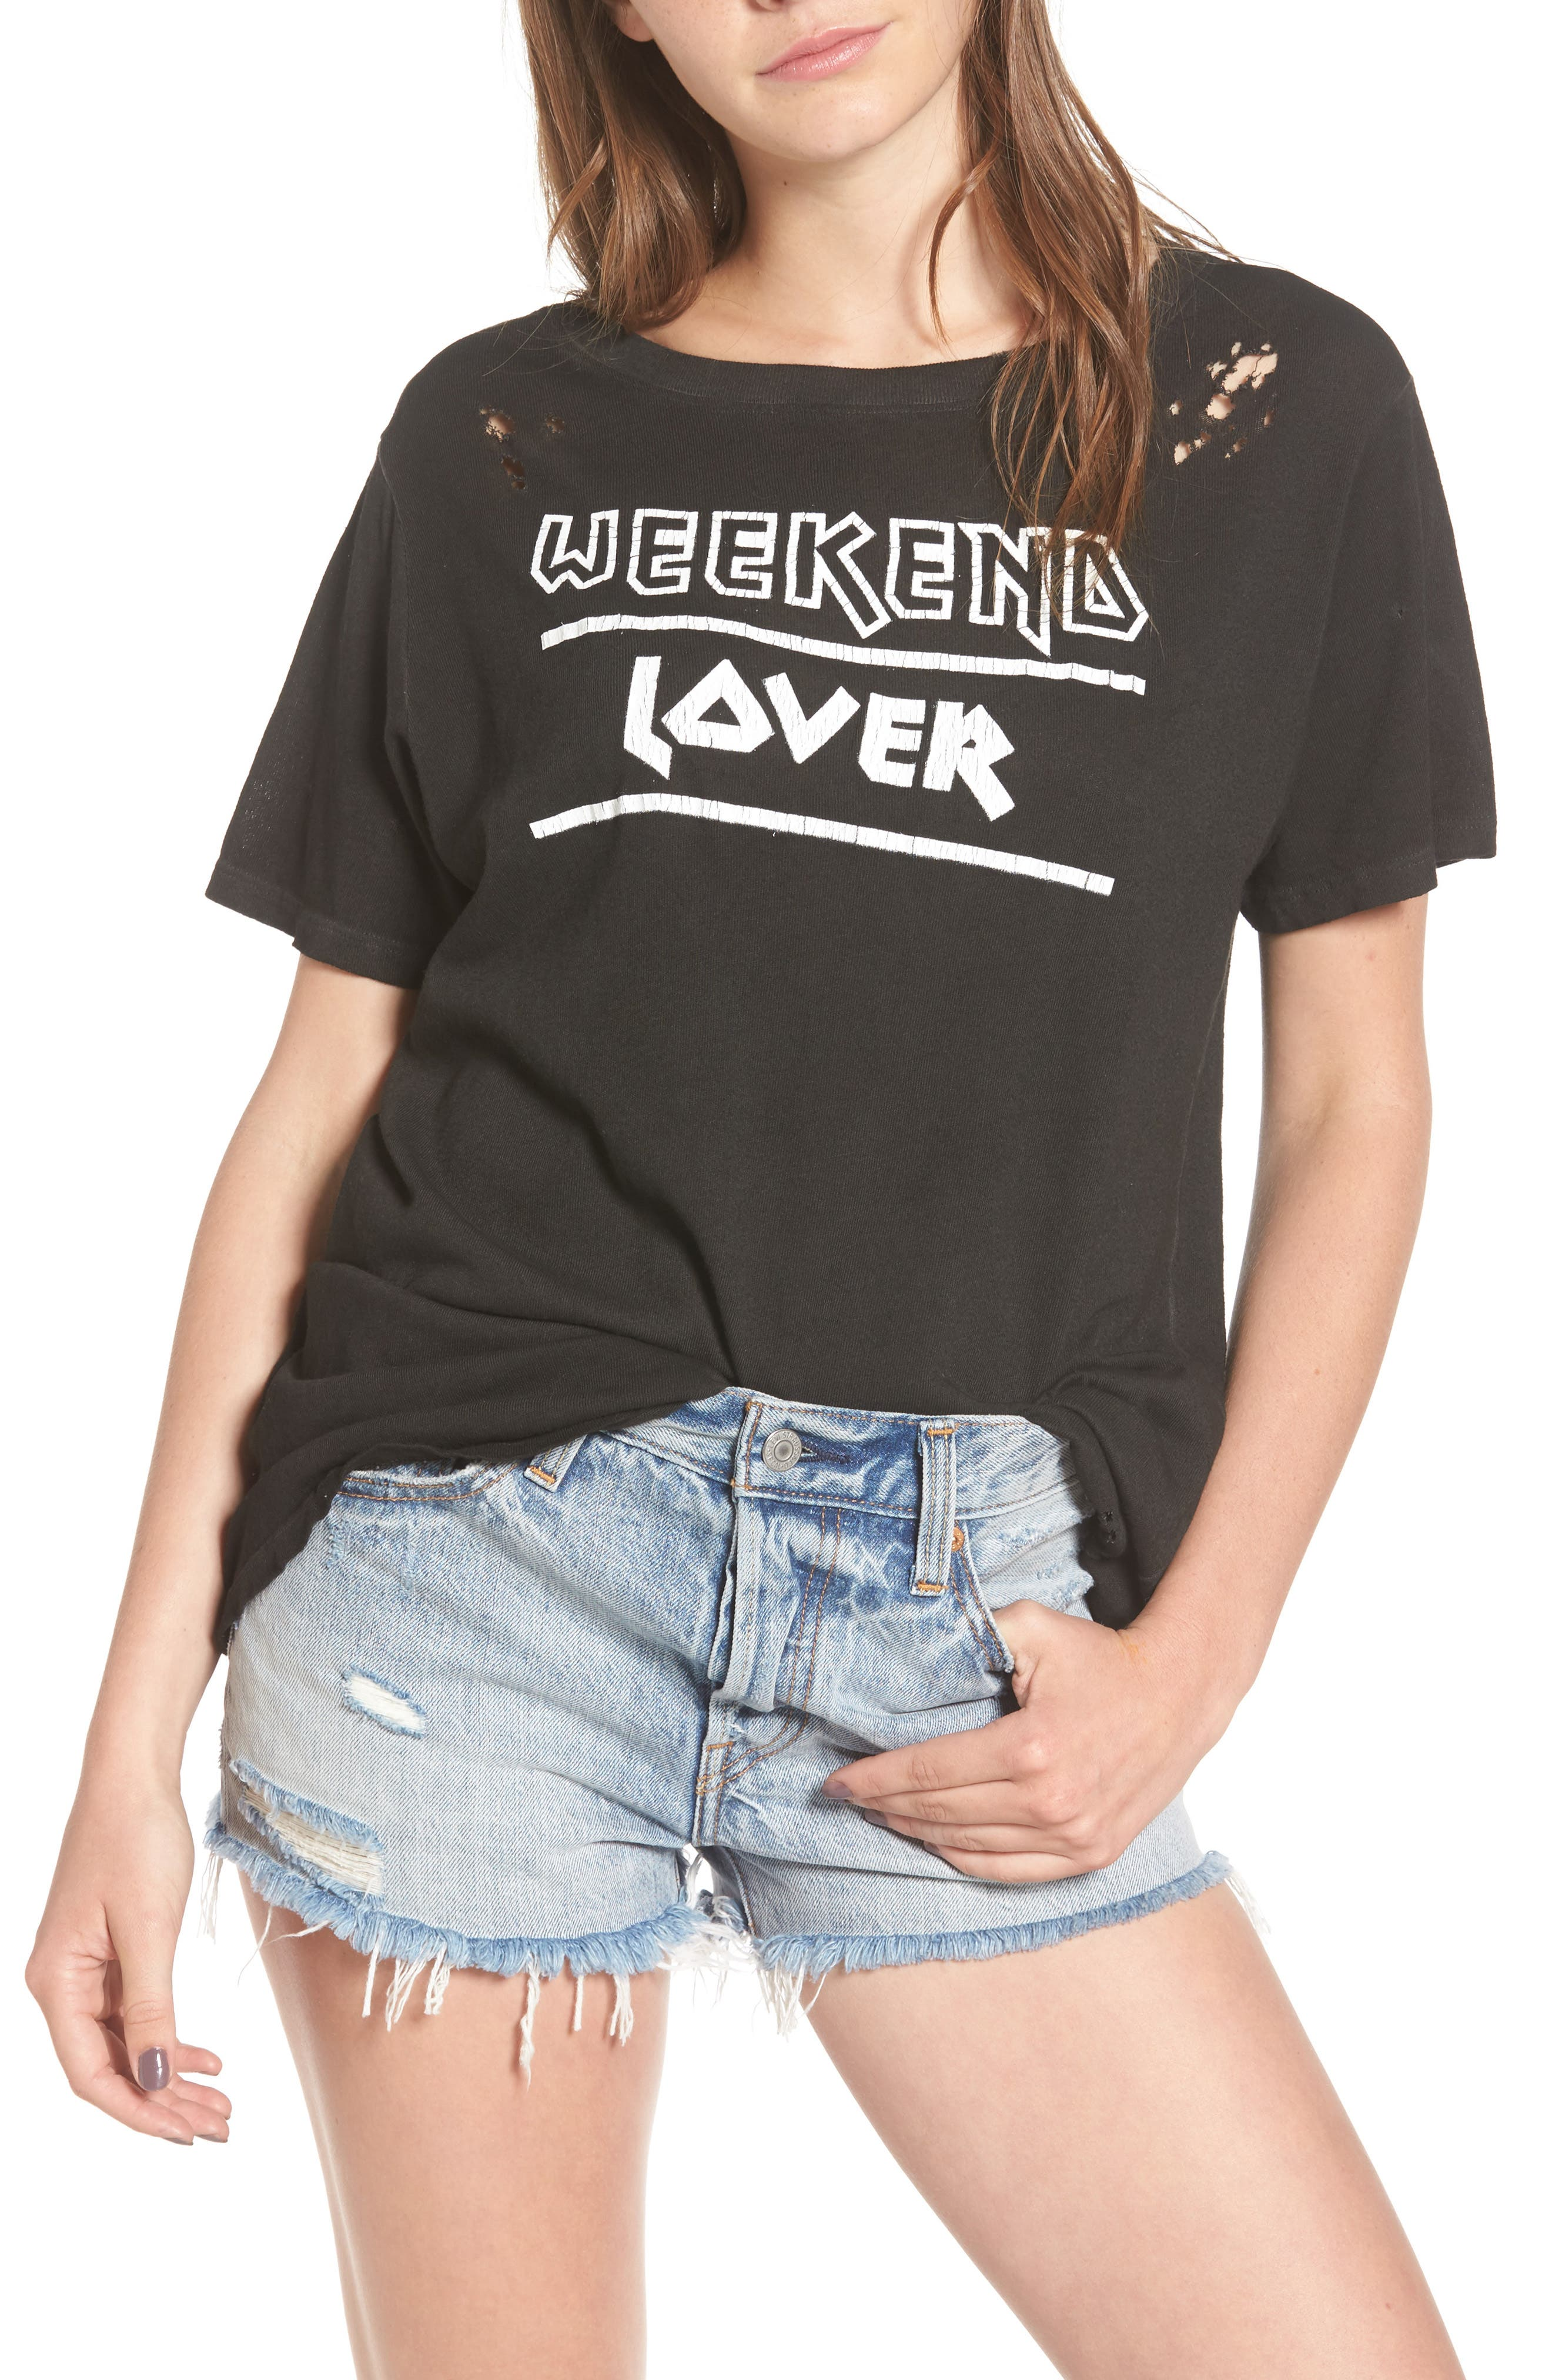 Main Image - Prince Peter Weekend Lover Distressed Tee